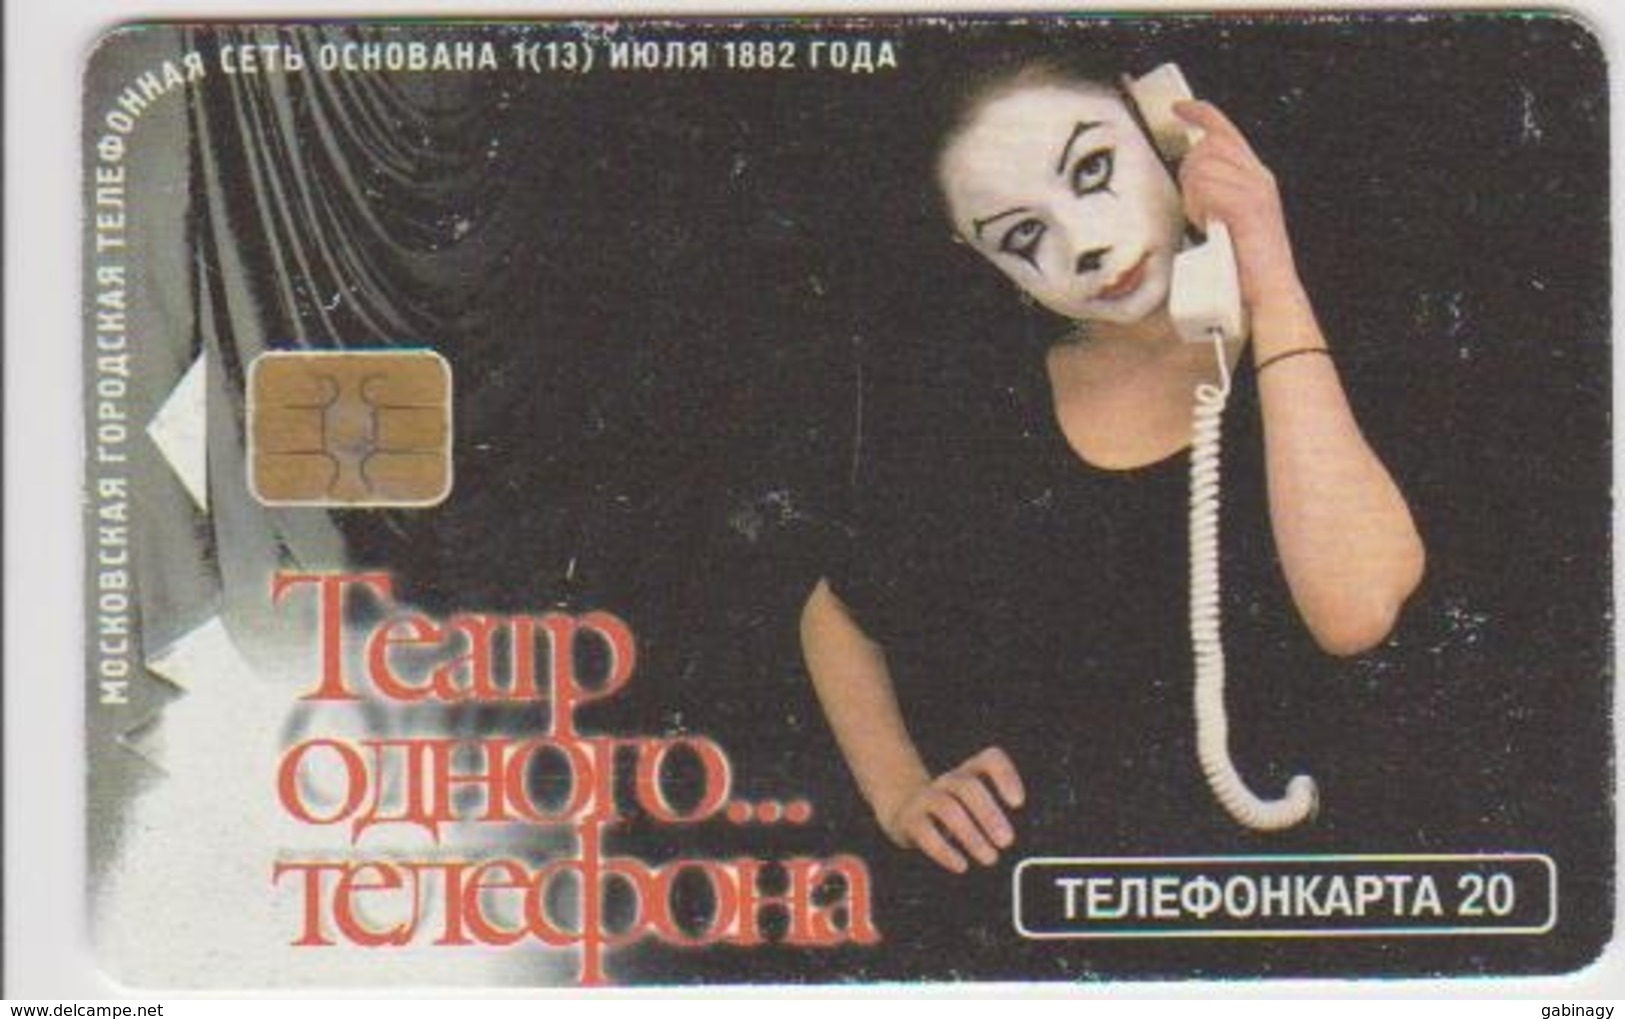 #12 - RUSSIA-115 - MGTS MOSCOW - THEATRE - TELEPHONE - 15.000EX. - Russland